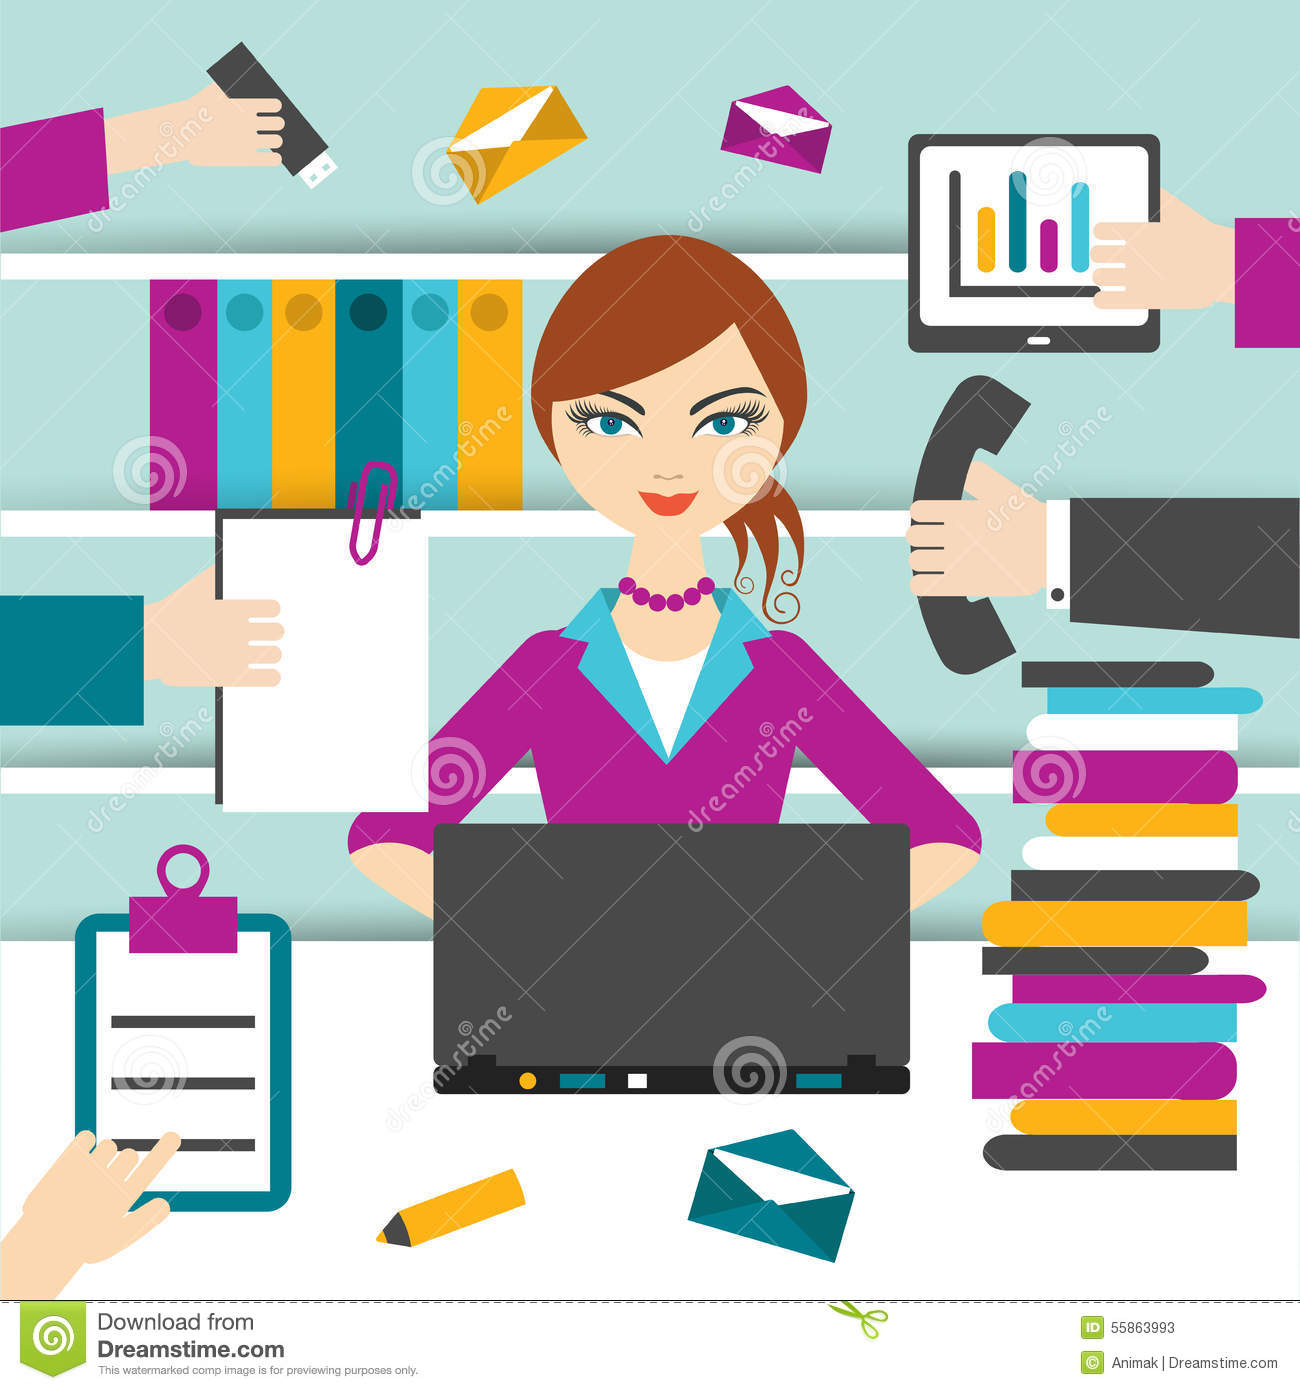 how to appear busy at work